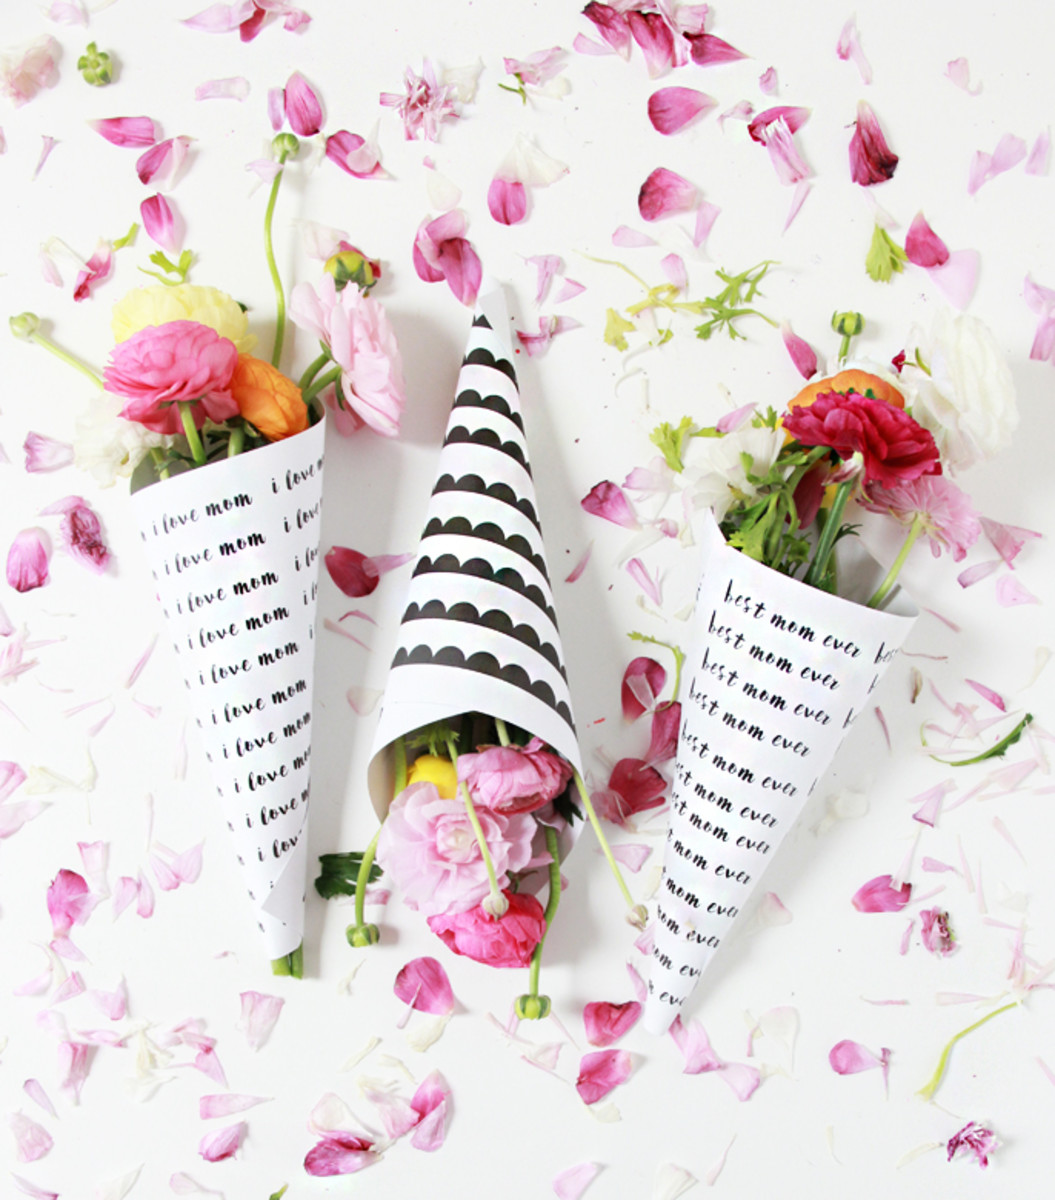 DIY Mother's Day Flower Bouquets Free Printables from abubblylife.com